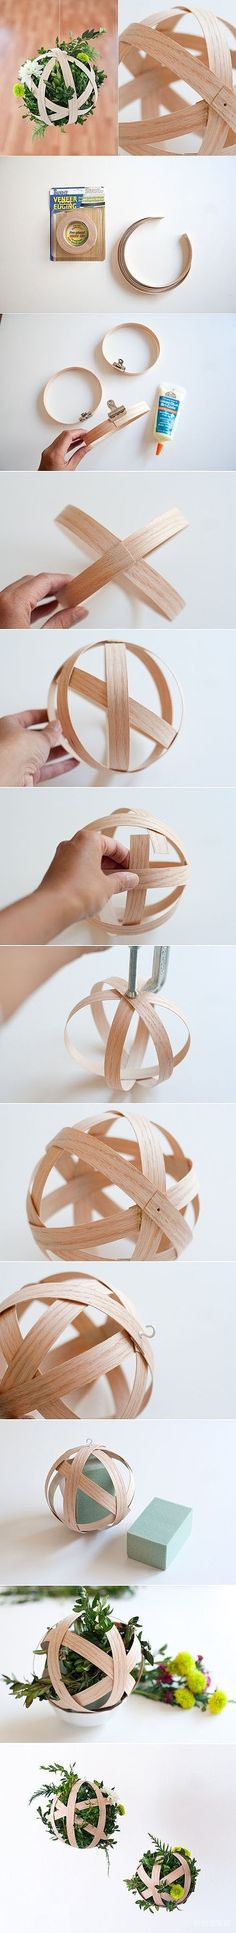 Make a flower ornament by hands.